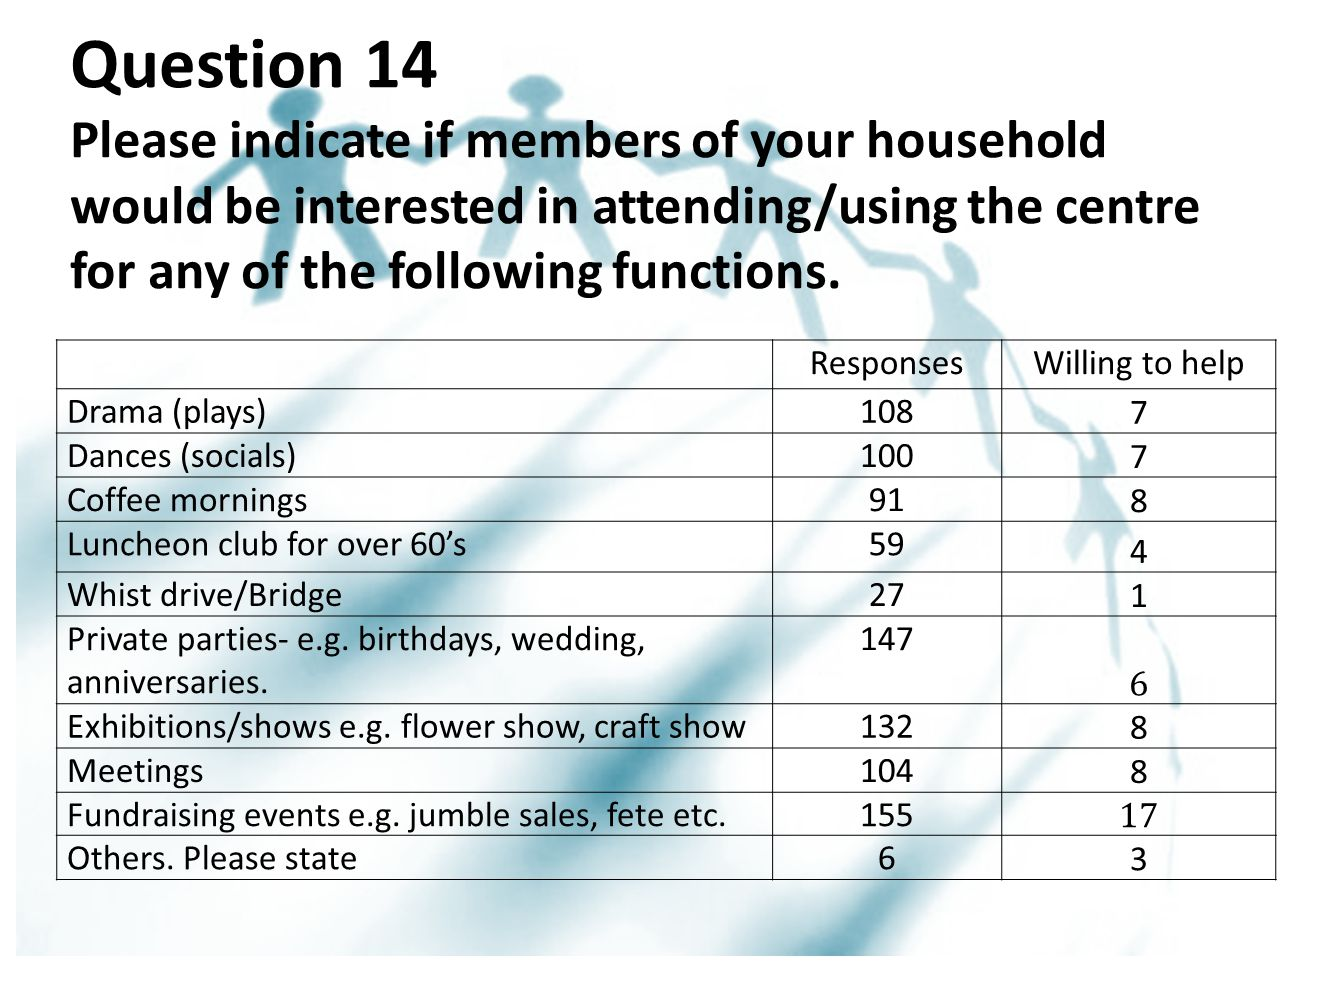 Question 14 Please indicate if members of your household would be interested in attending/using the centre for any of the following functions.